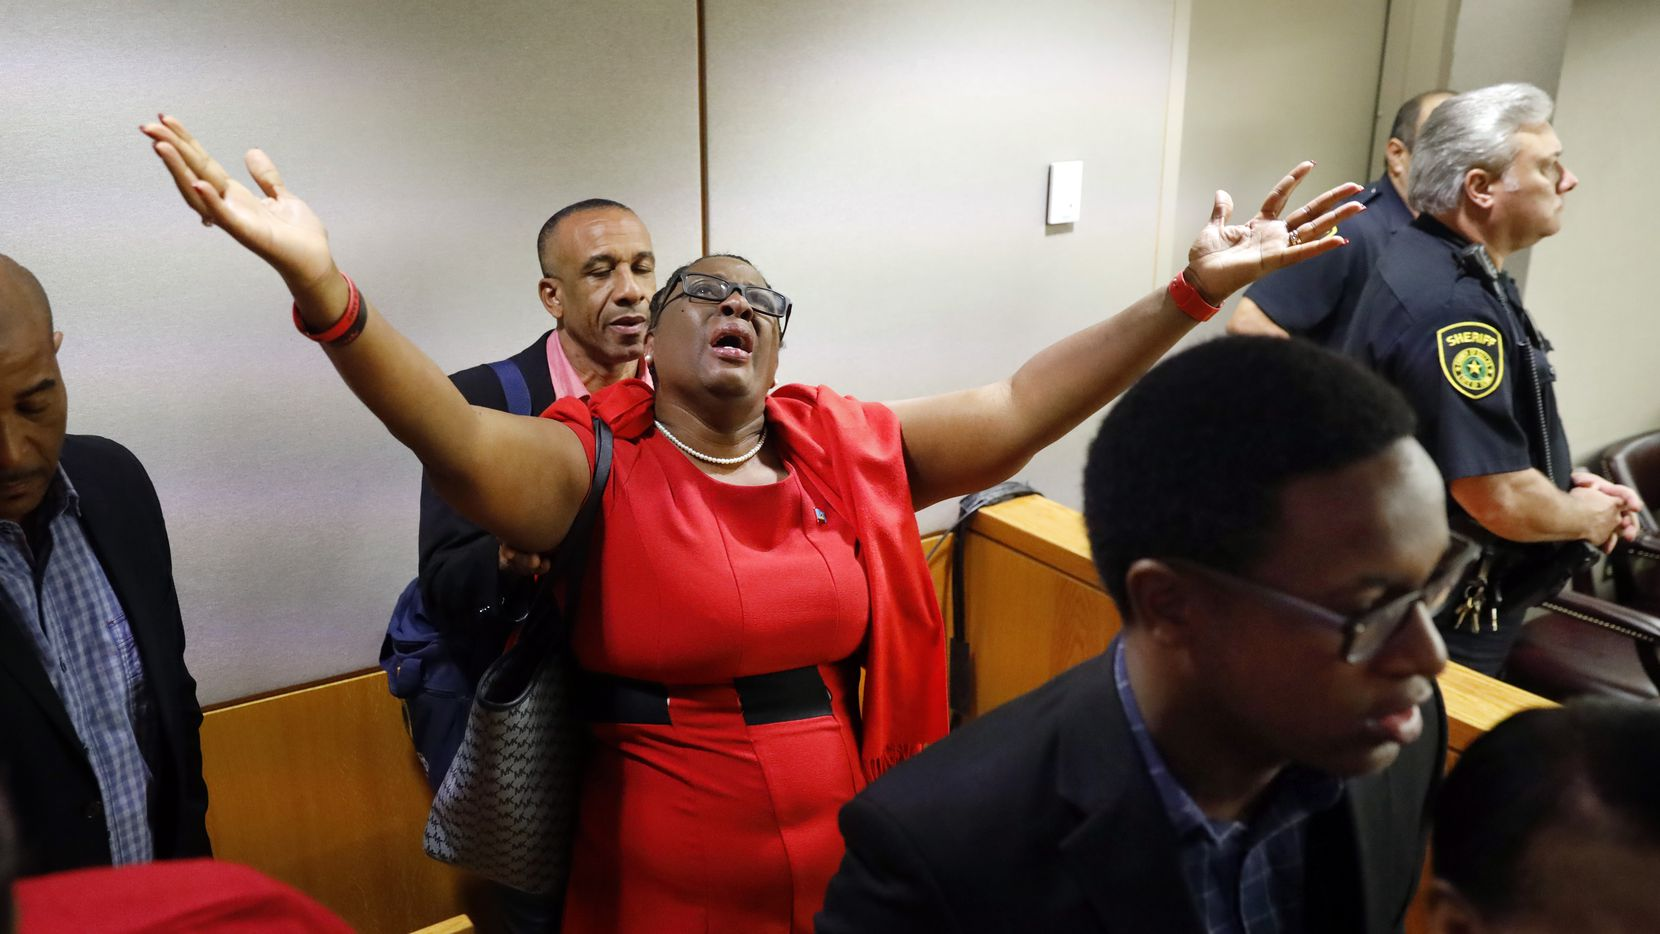 Allison Jean rejoiced after Amber Guyger was convicted of murder for killing her son Botham Jean. Months later, Jean is trying to move on.